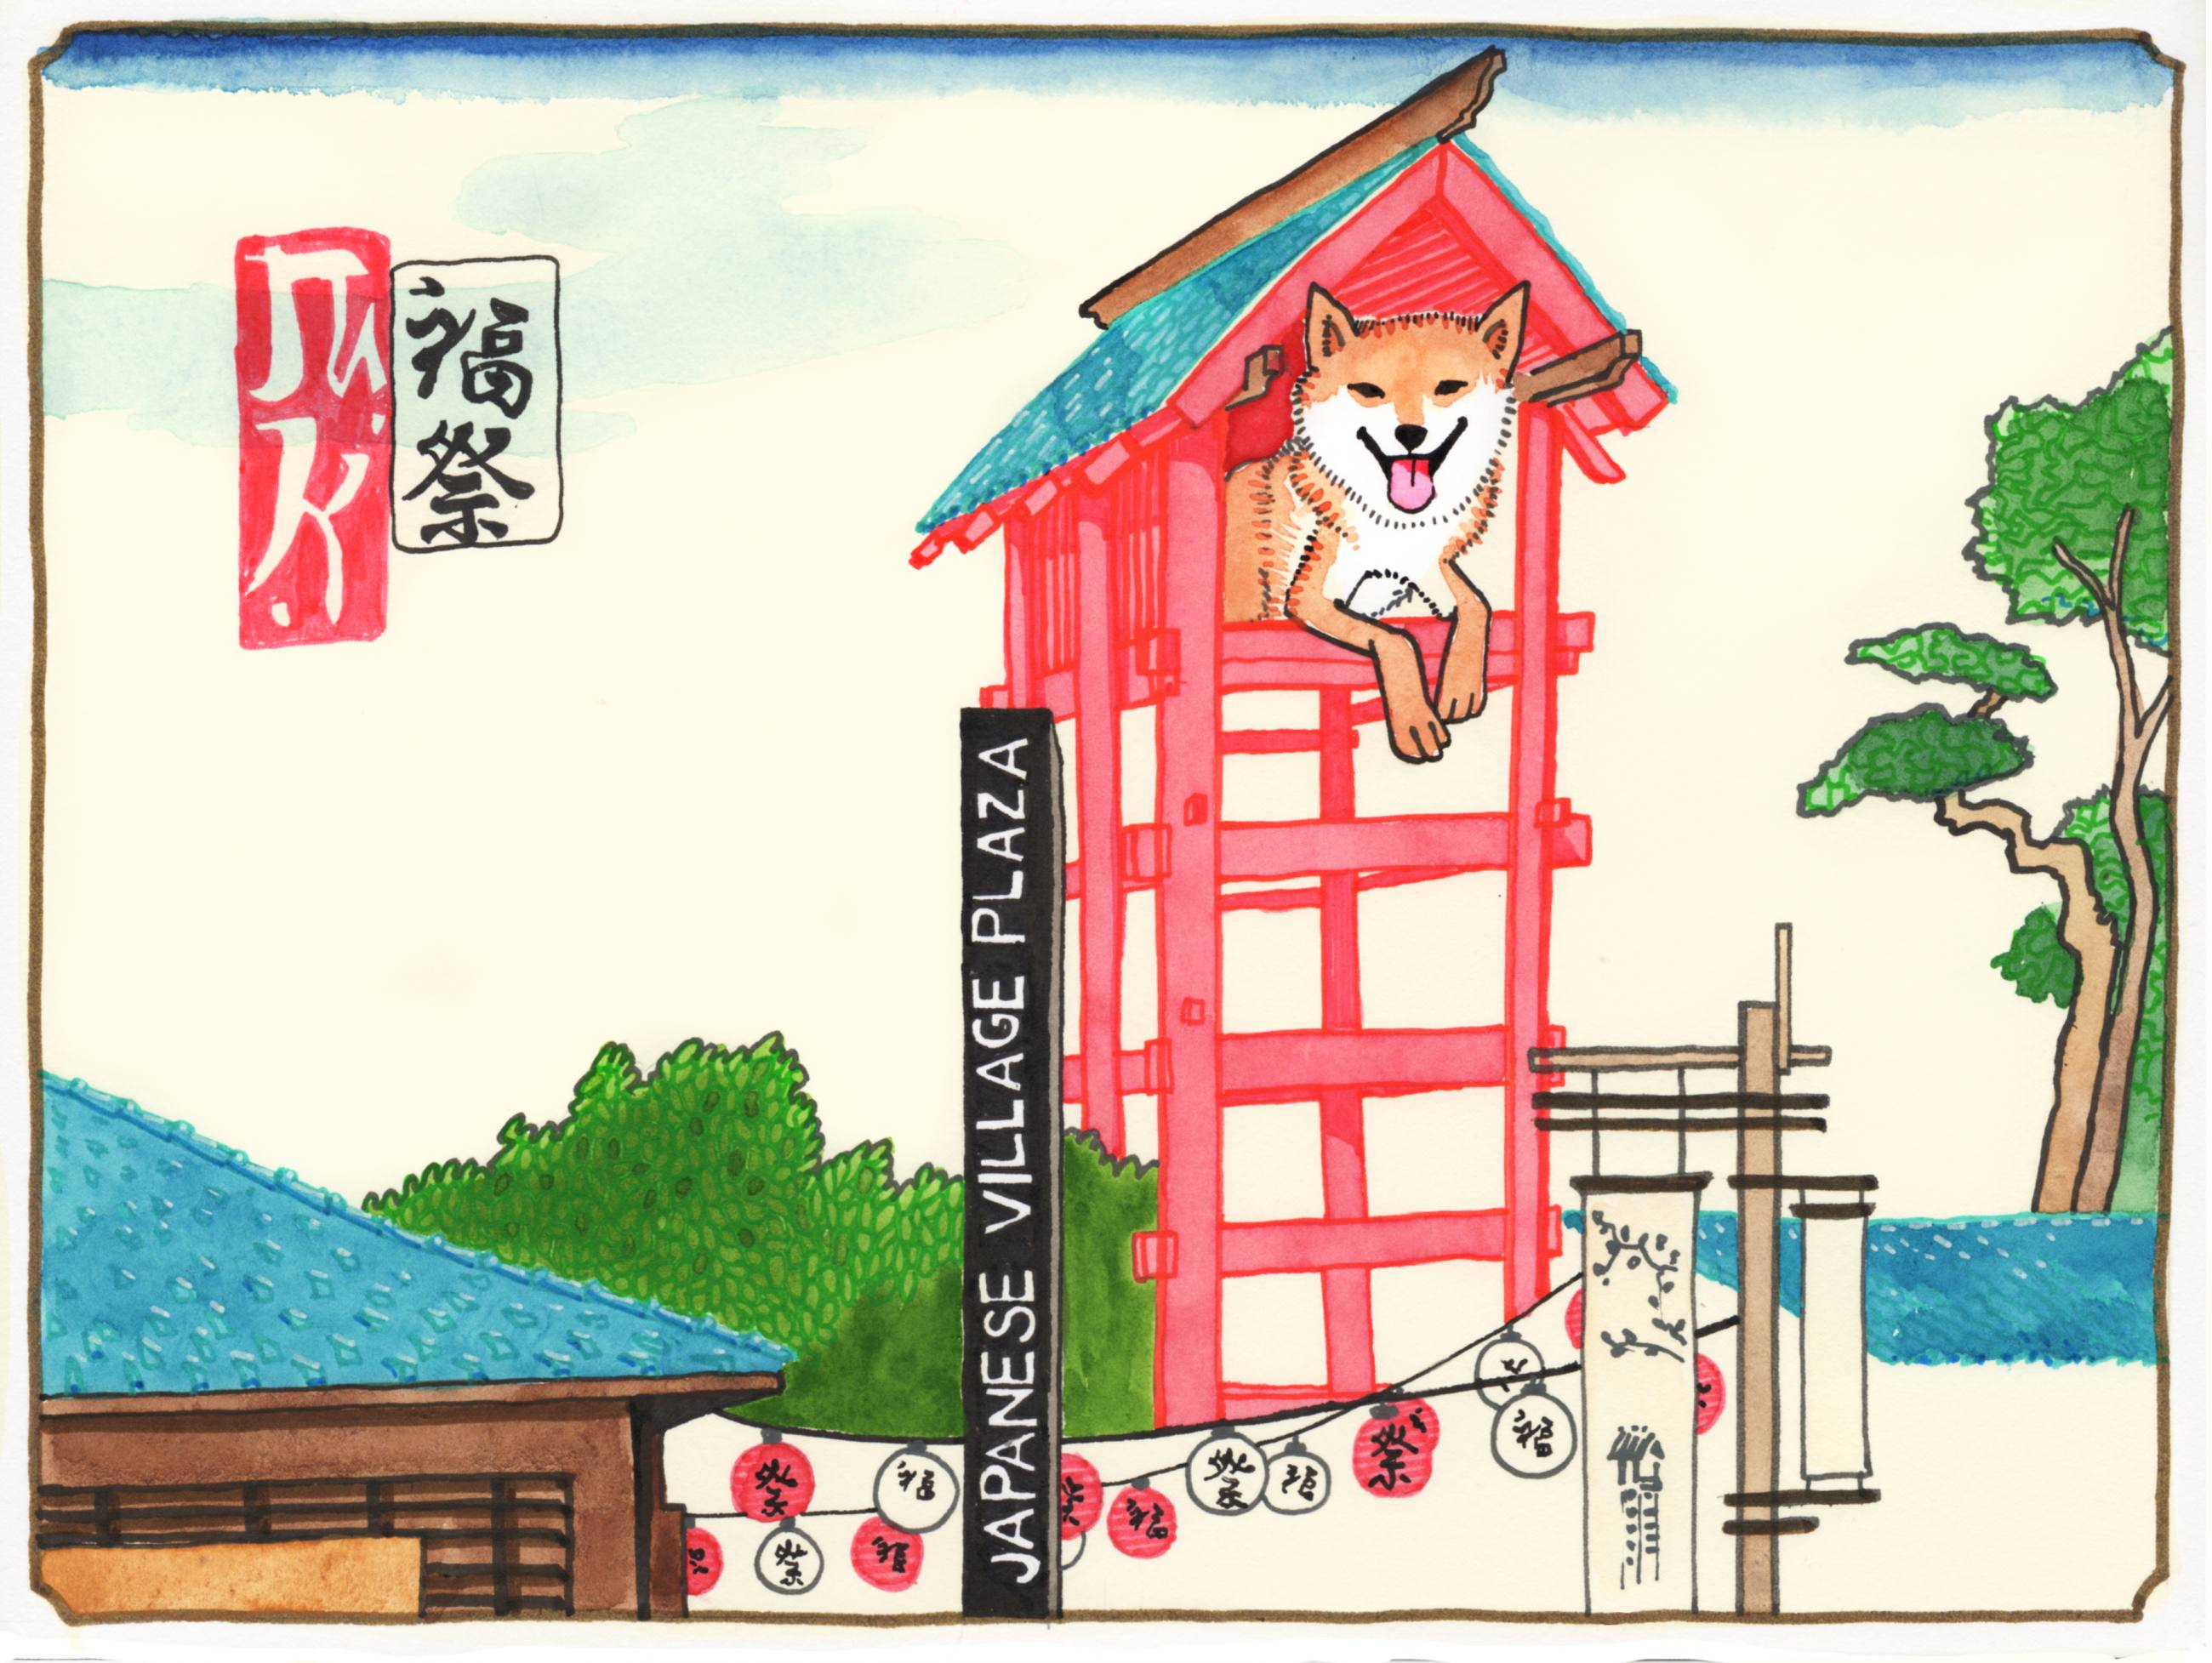 Shiba Inu in Little Tokyo | Illustration by Max Kornell